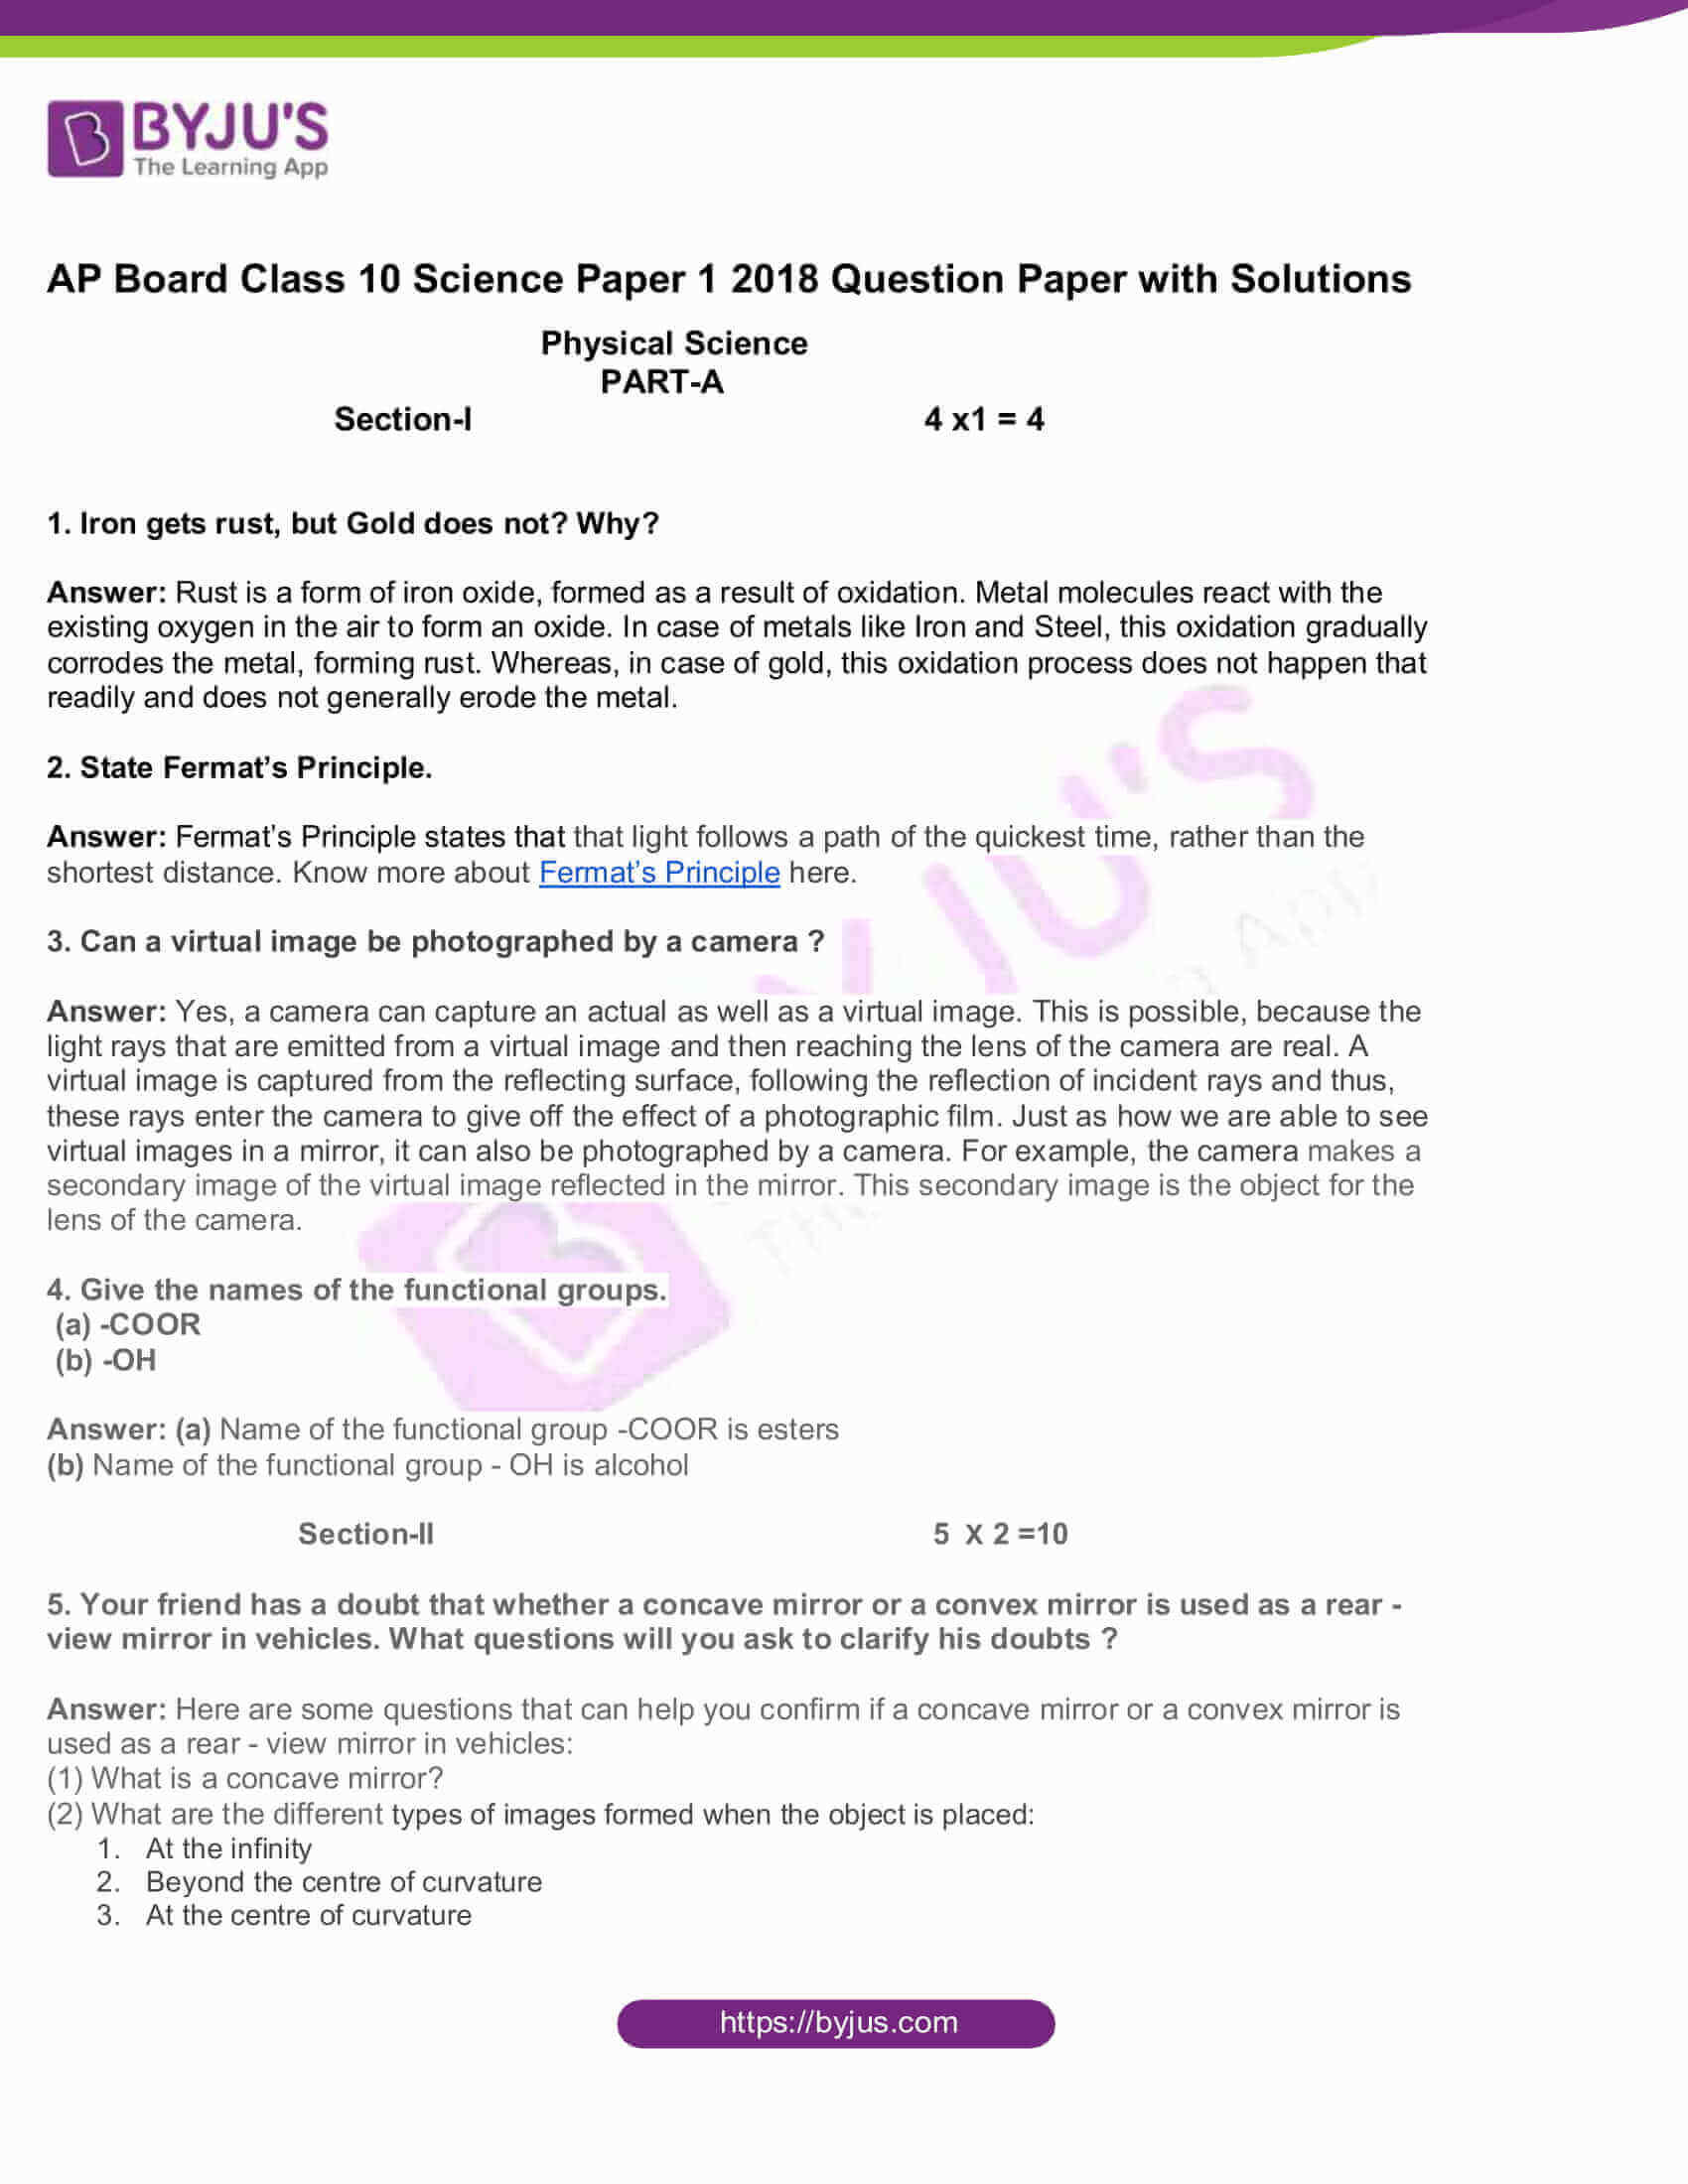 AP Board Class 10 Science Paper 1 2018 Question Paper with Solutions 1